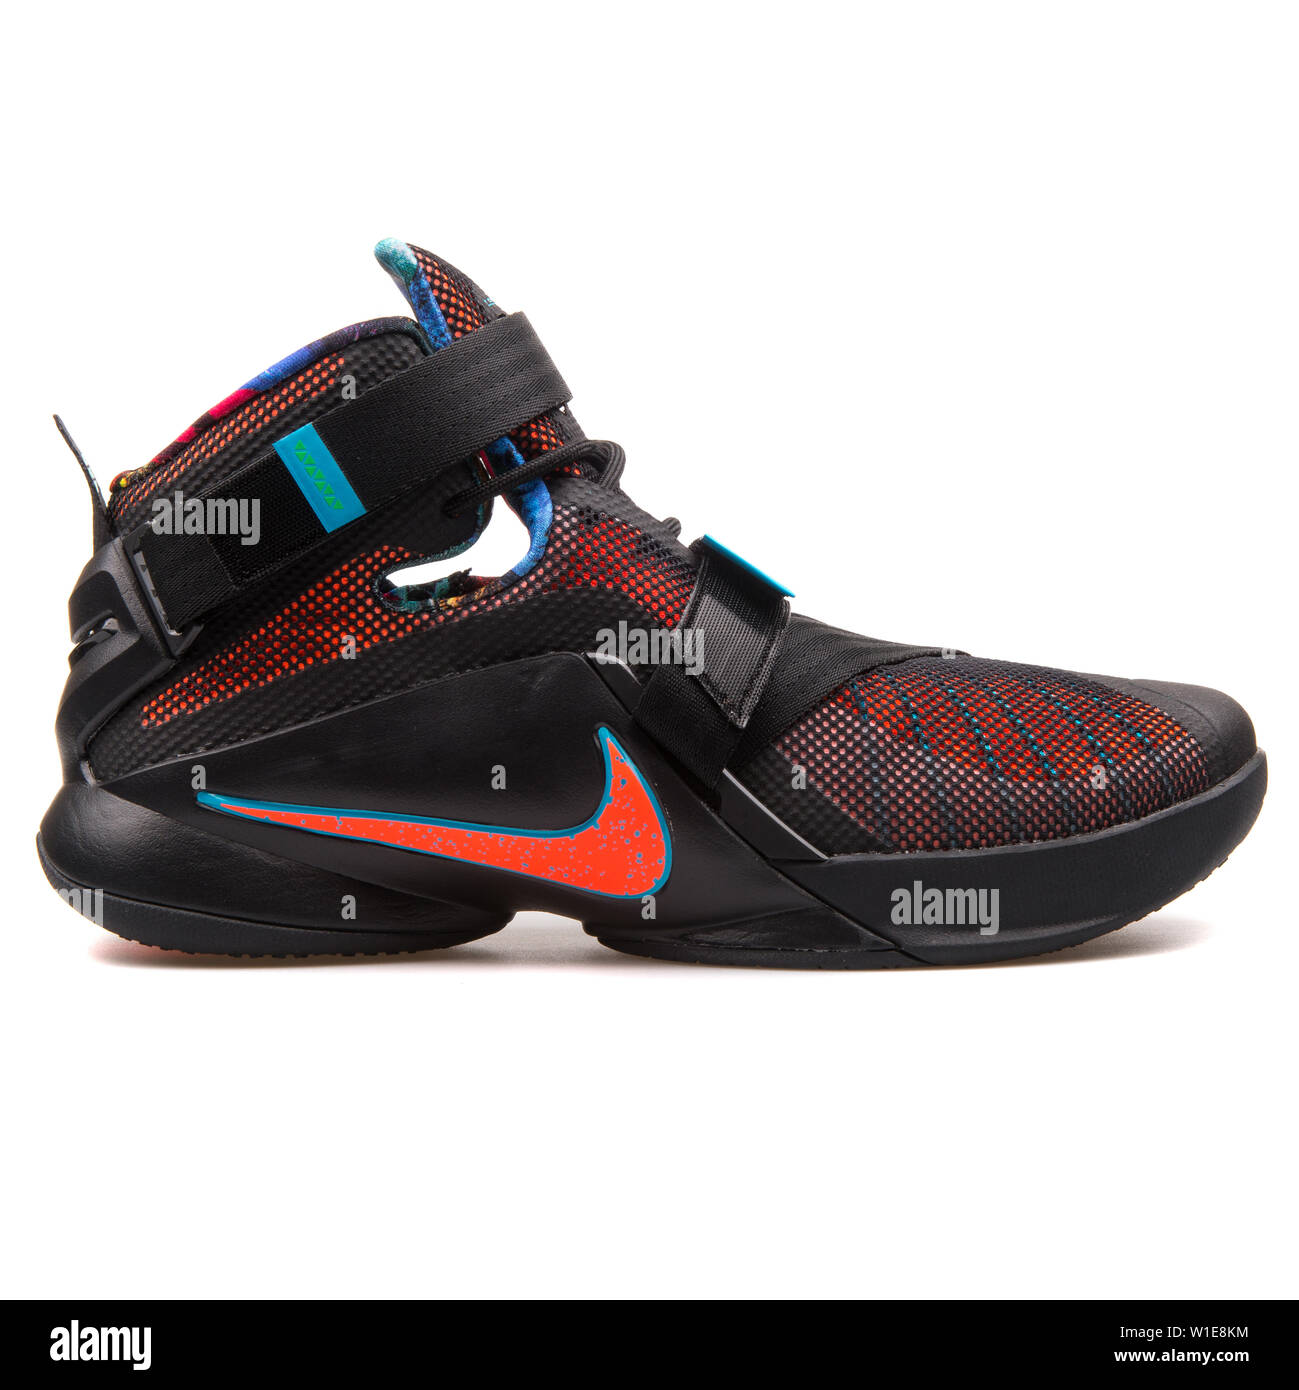 cheaper 68454 39a76 VIENNA, AUSTRIA - AUGUST 25, 2017: Nike Lebron Soldier IX ...